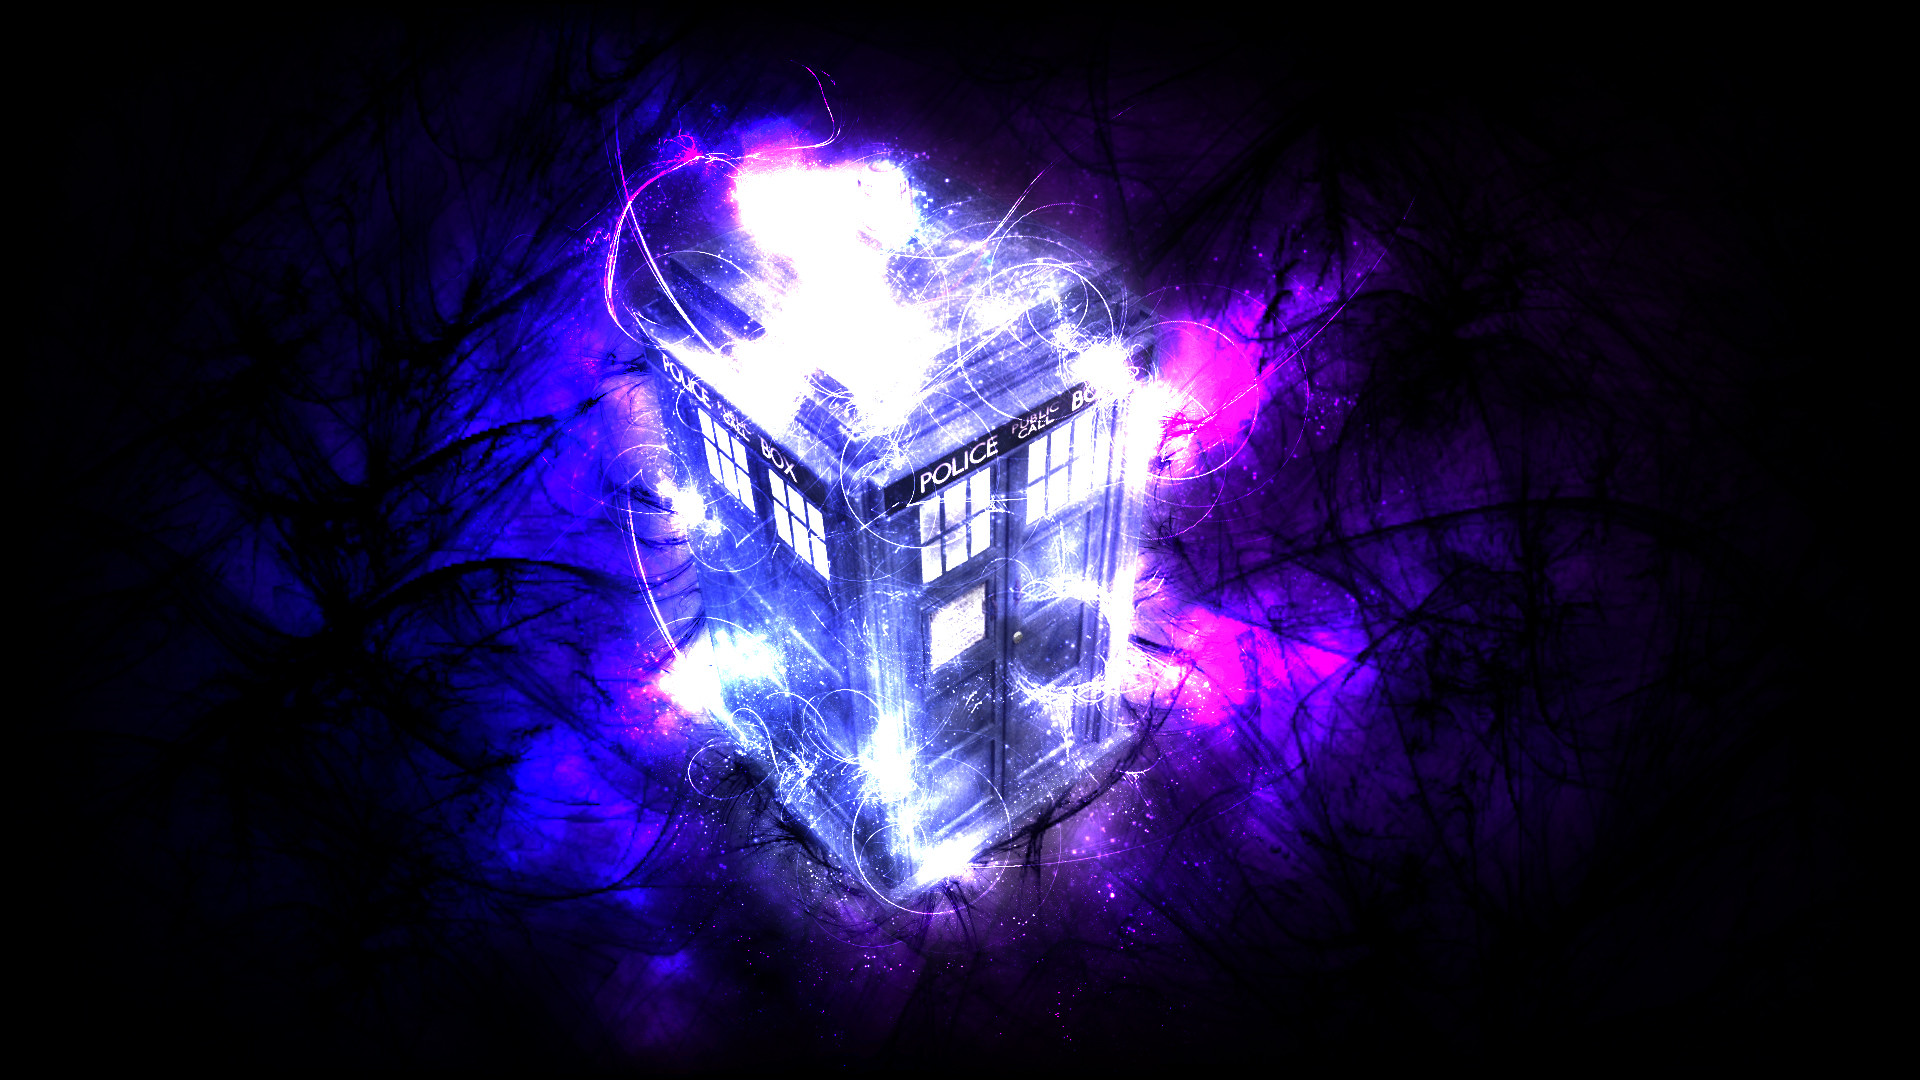 doctor who live wallpaper  Doctor Who Android Live Wallpapers (62  images)